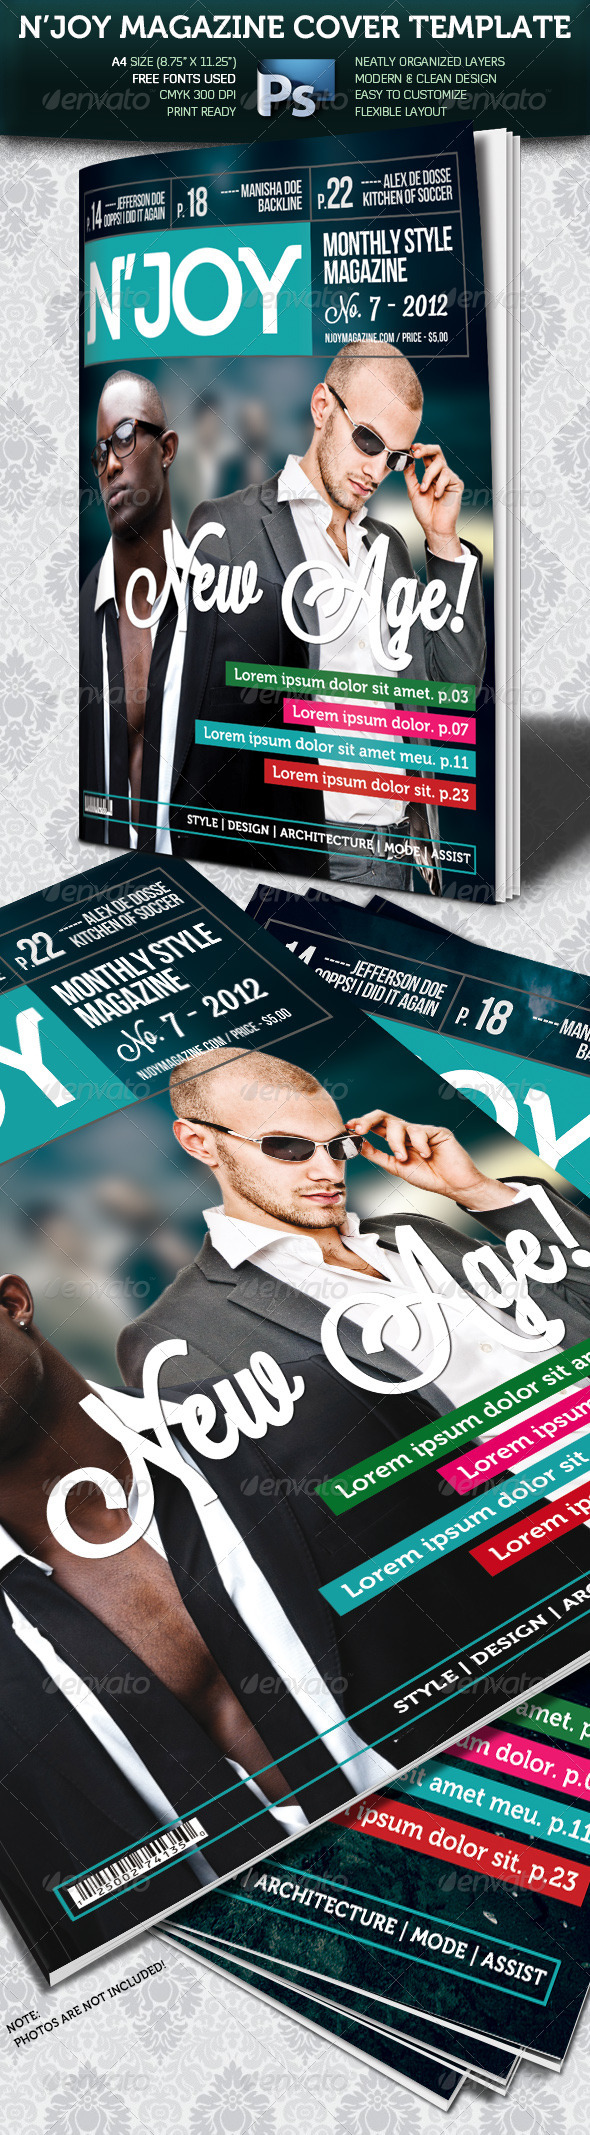 N'joy A4 Magazine Cover - Magazines Print Templates